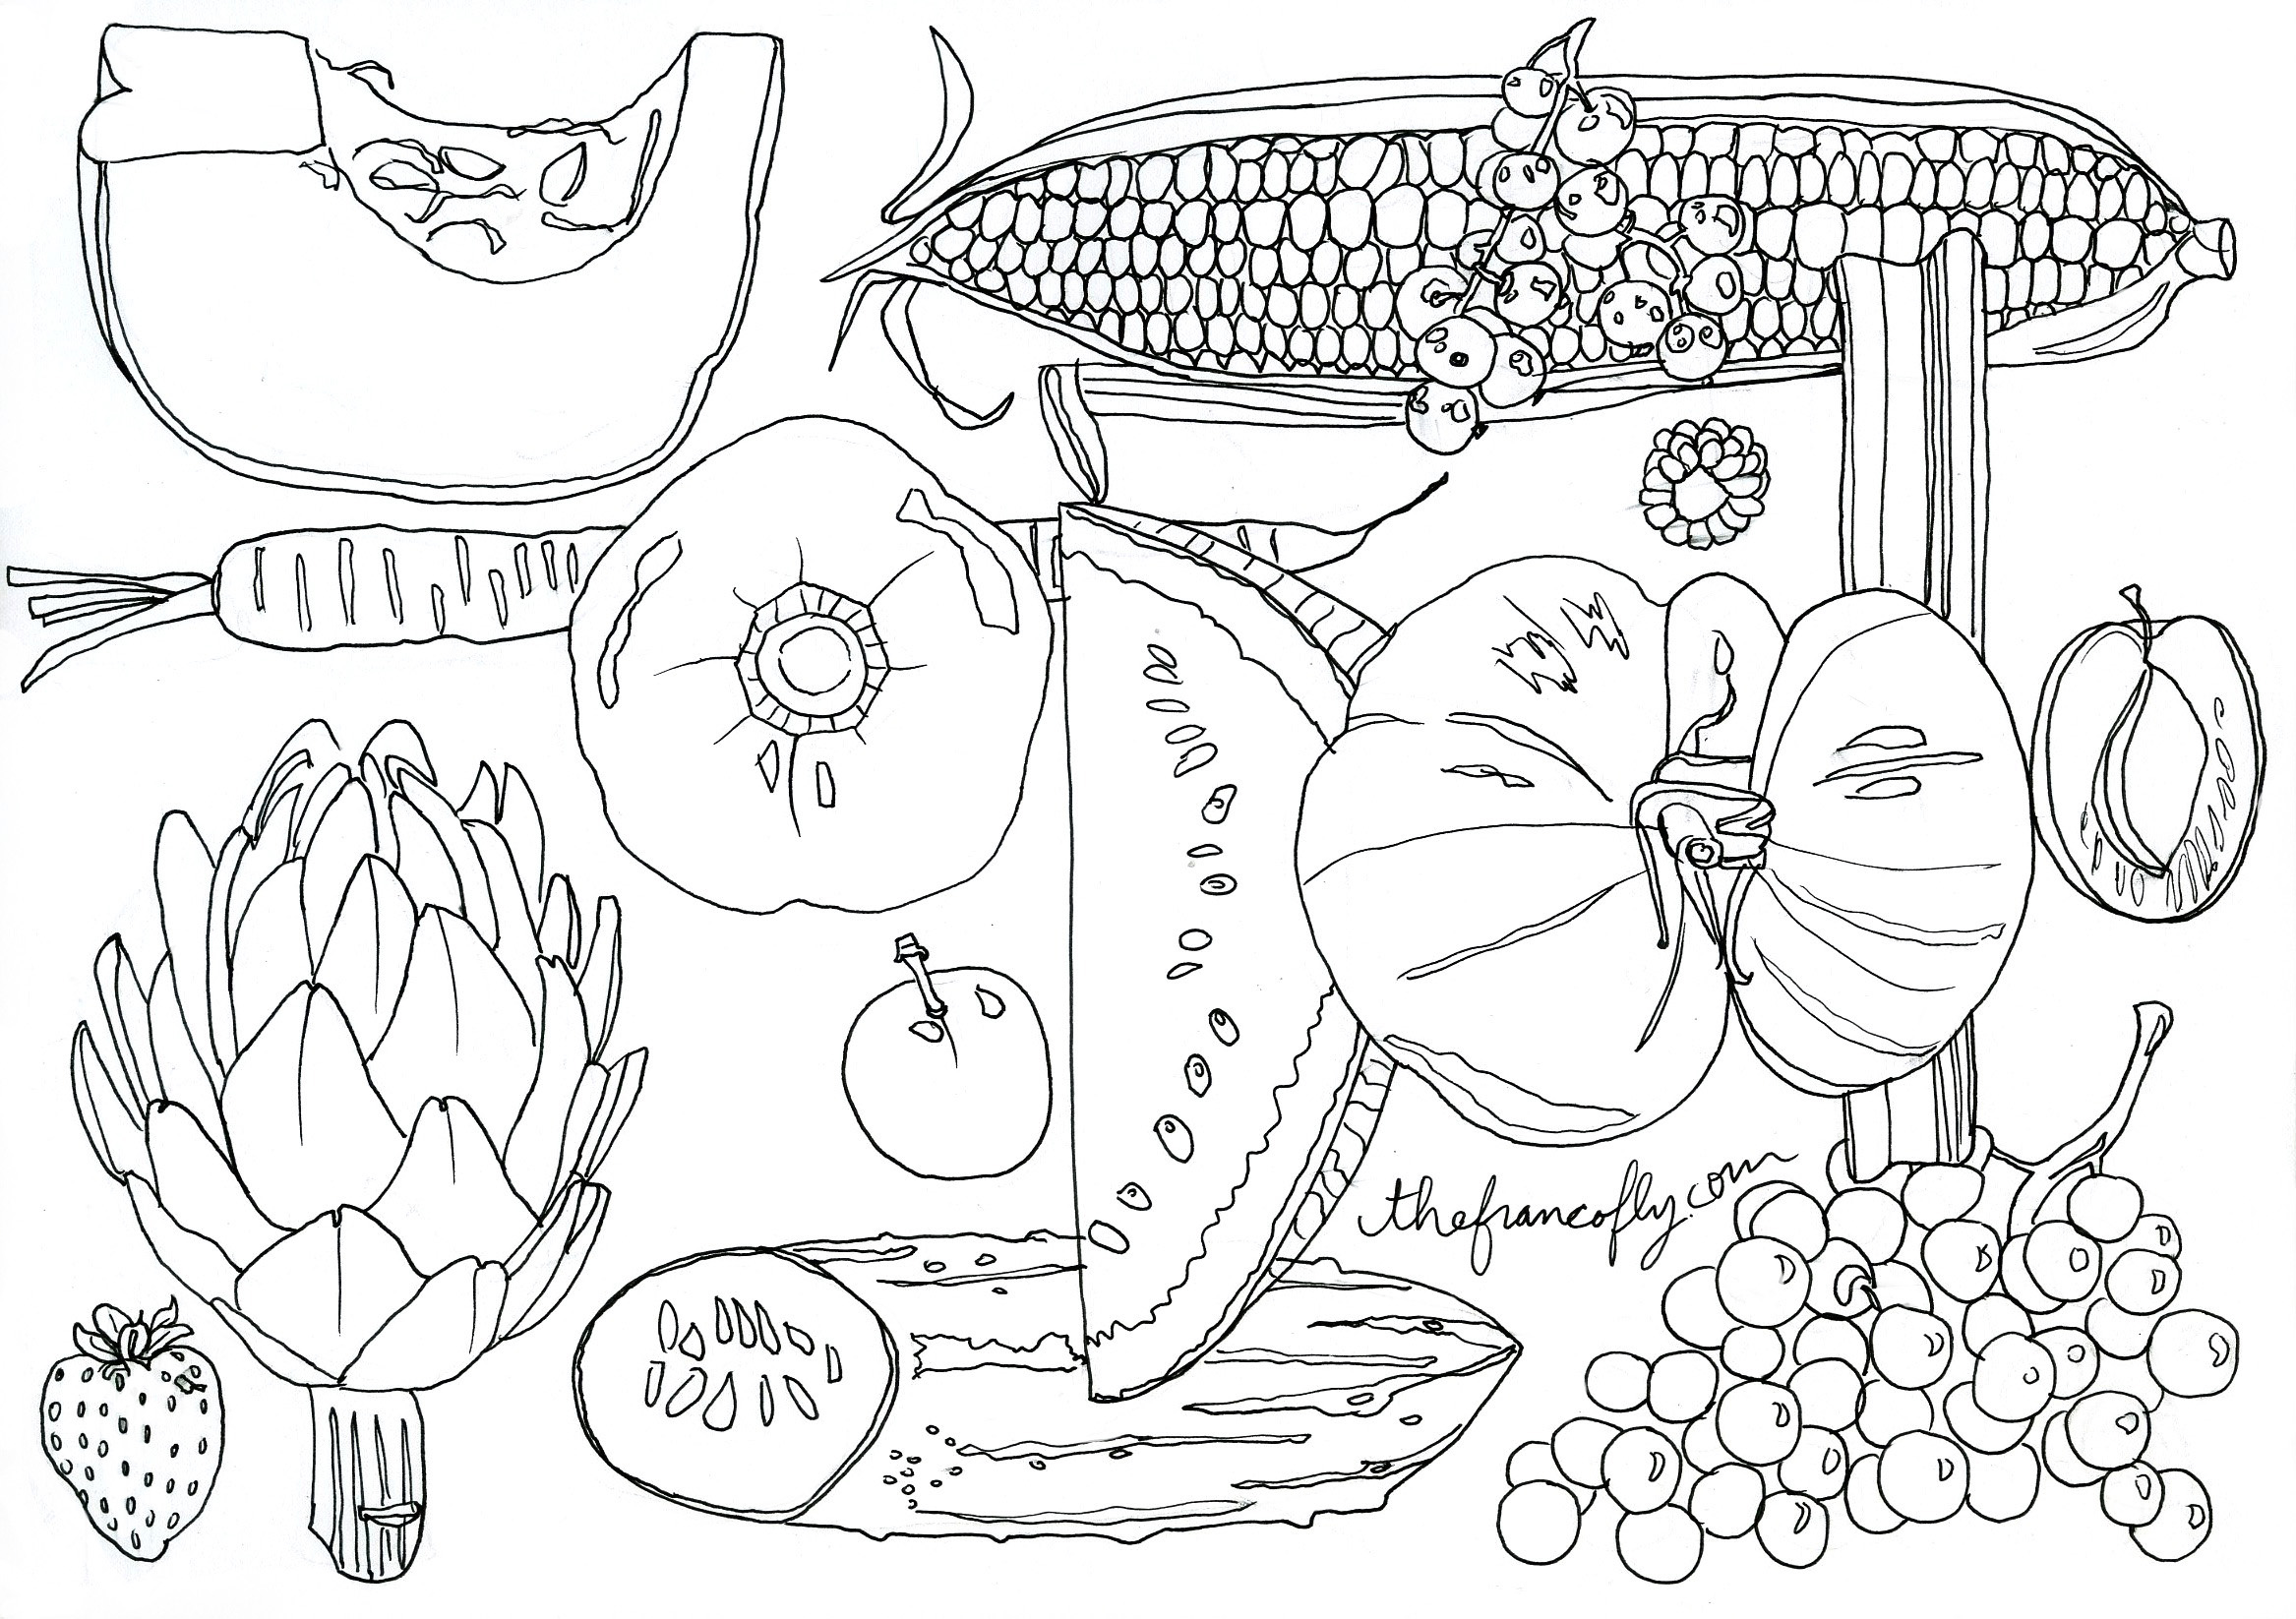 September color me seasonal thefrancofly for September coloring pages